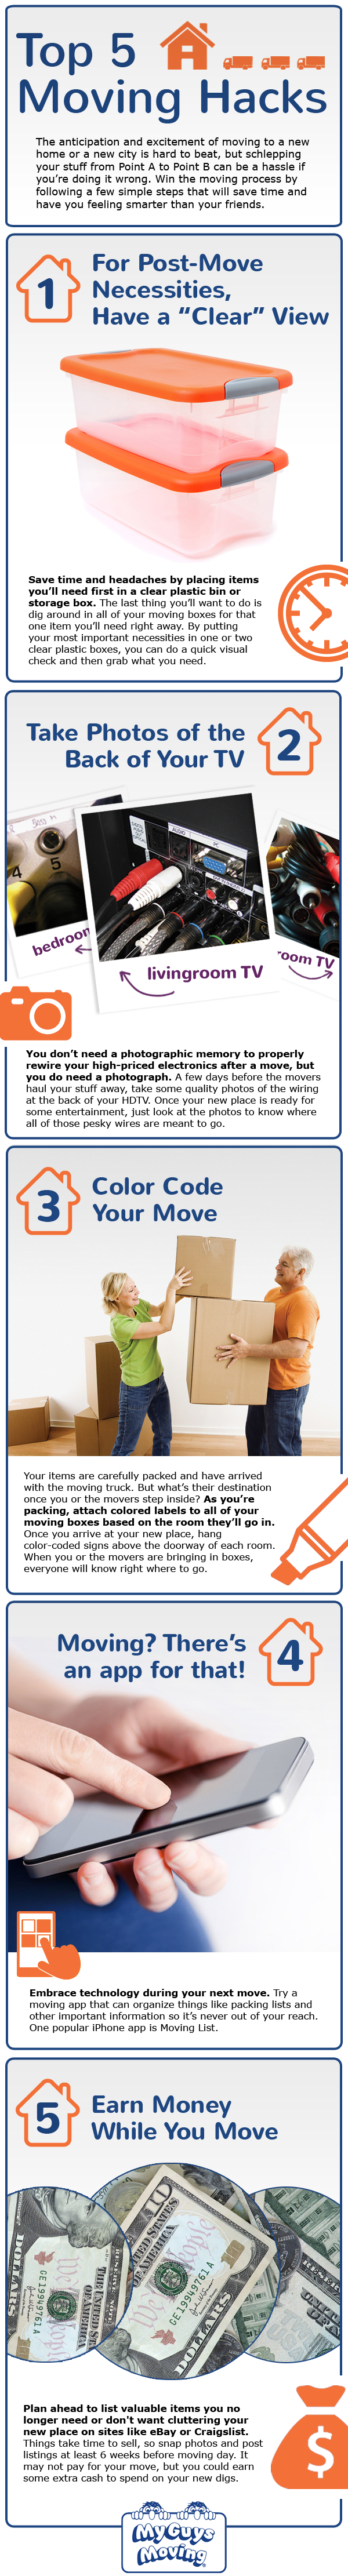 moving tips and tricks - the top 5 hacks